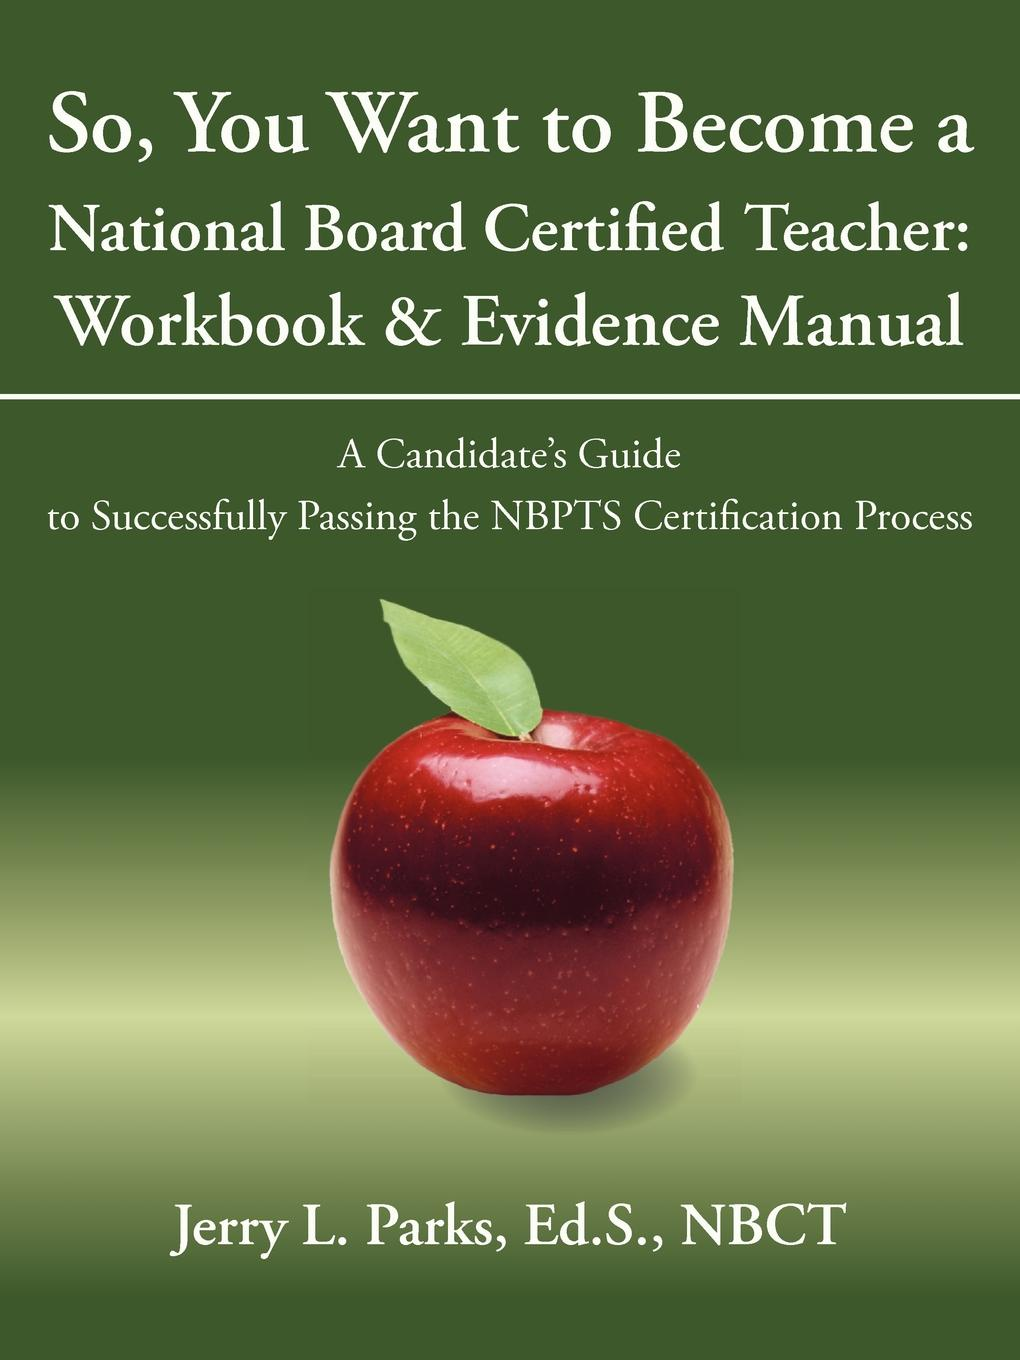 Ed S. Nbct Jerry L. Parks So, You Want to Become a National Board Certified Teacher. Workbook . Evidence Manual: A Candidate.s Guide to Successfully Passing the Nbpts Certifica 2018 successful teacher workbook this half year edition notepad planner effective time management manual b5